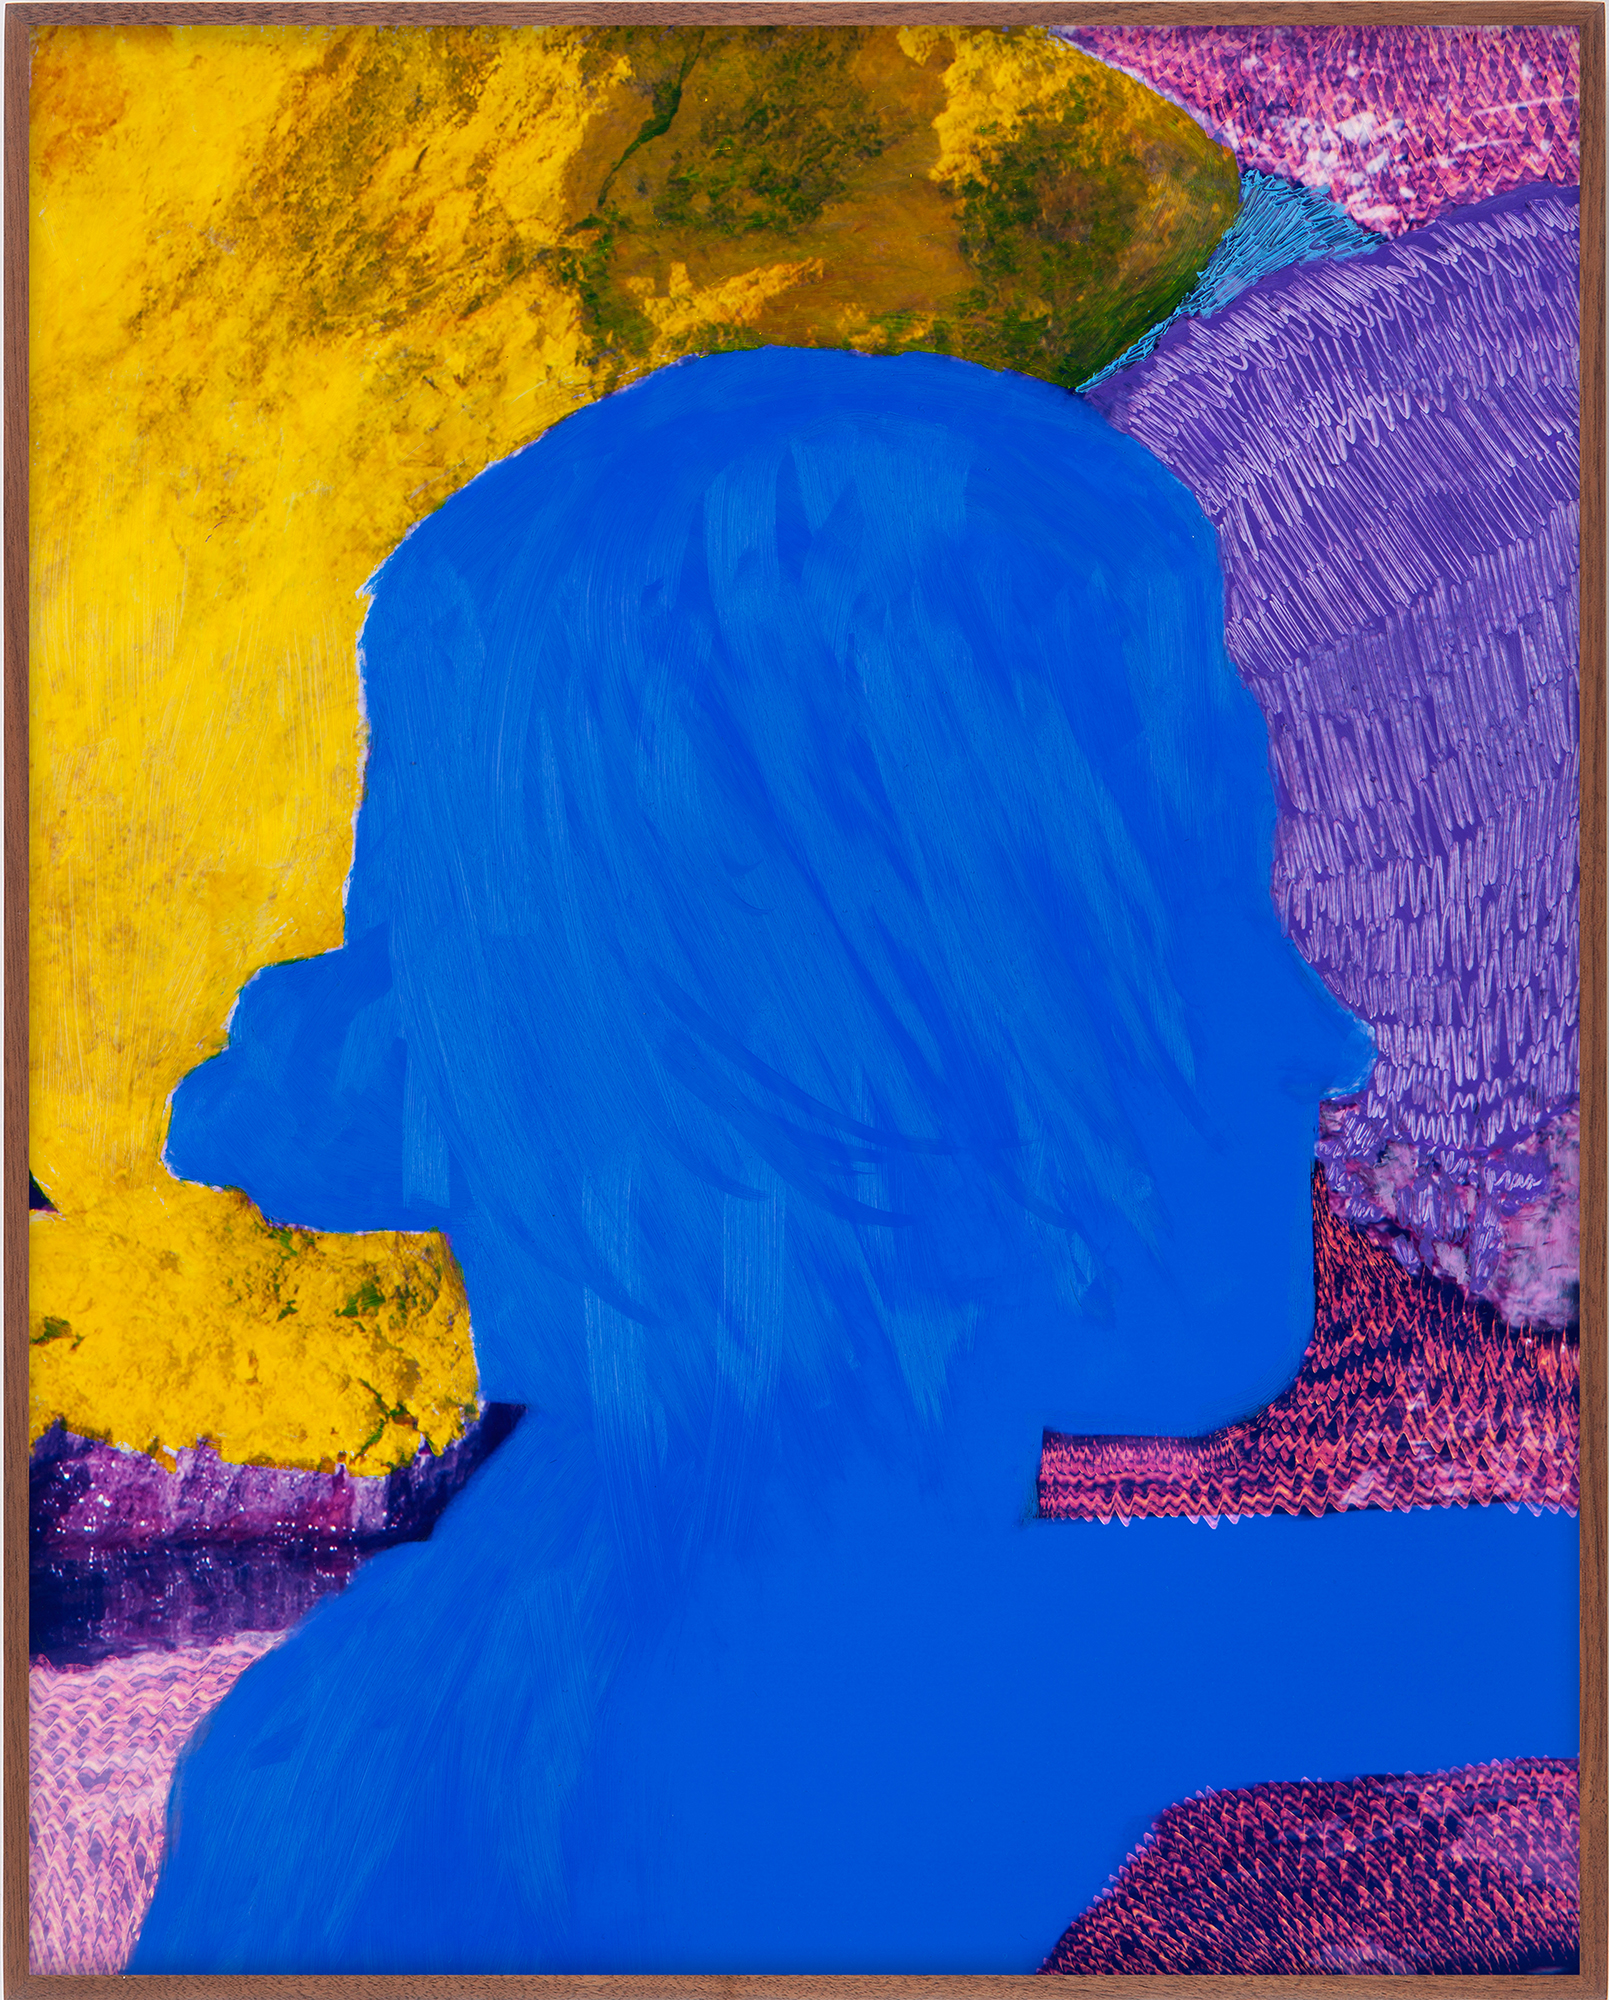 Evan Whale  Bust in Profile, Blue Foreground (Study), 2018  Oil and etching on c-print, artist frame  20½ x 16½ inches (52.1 x 41.9 cm)  Unique